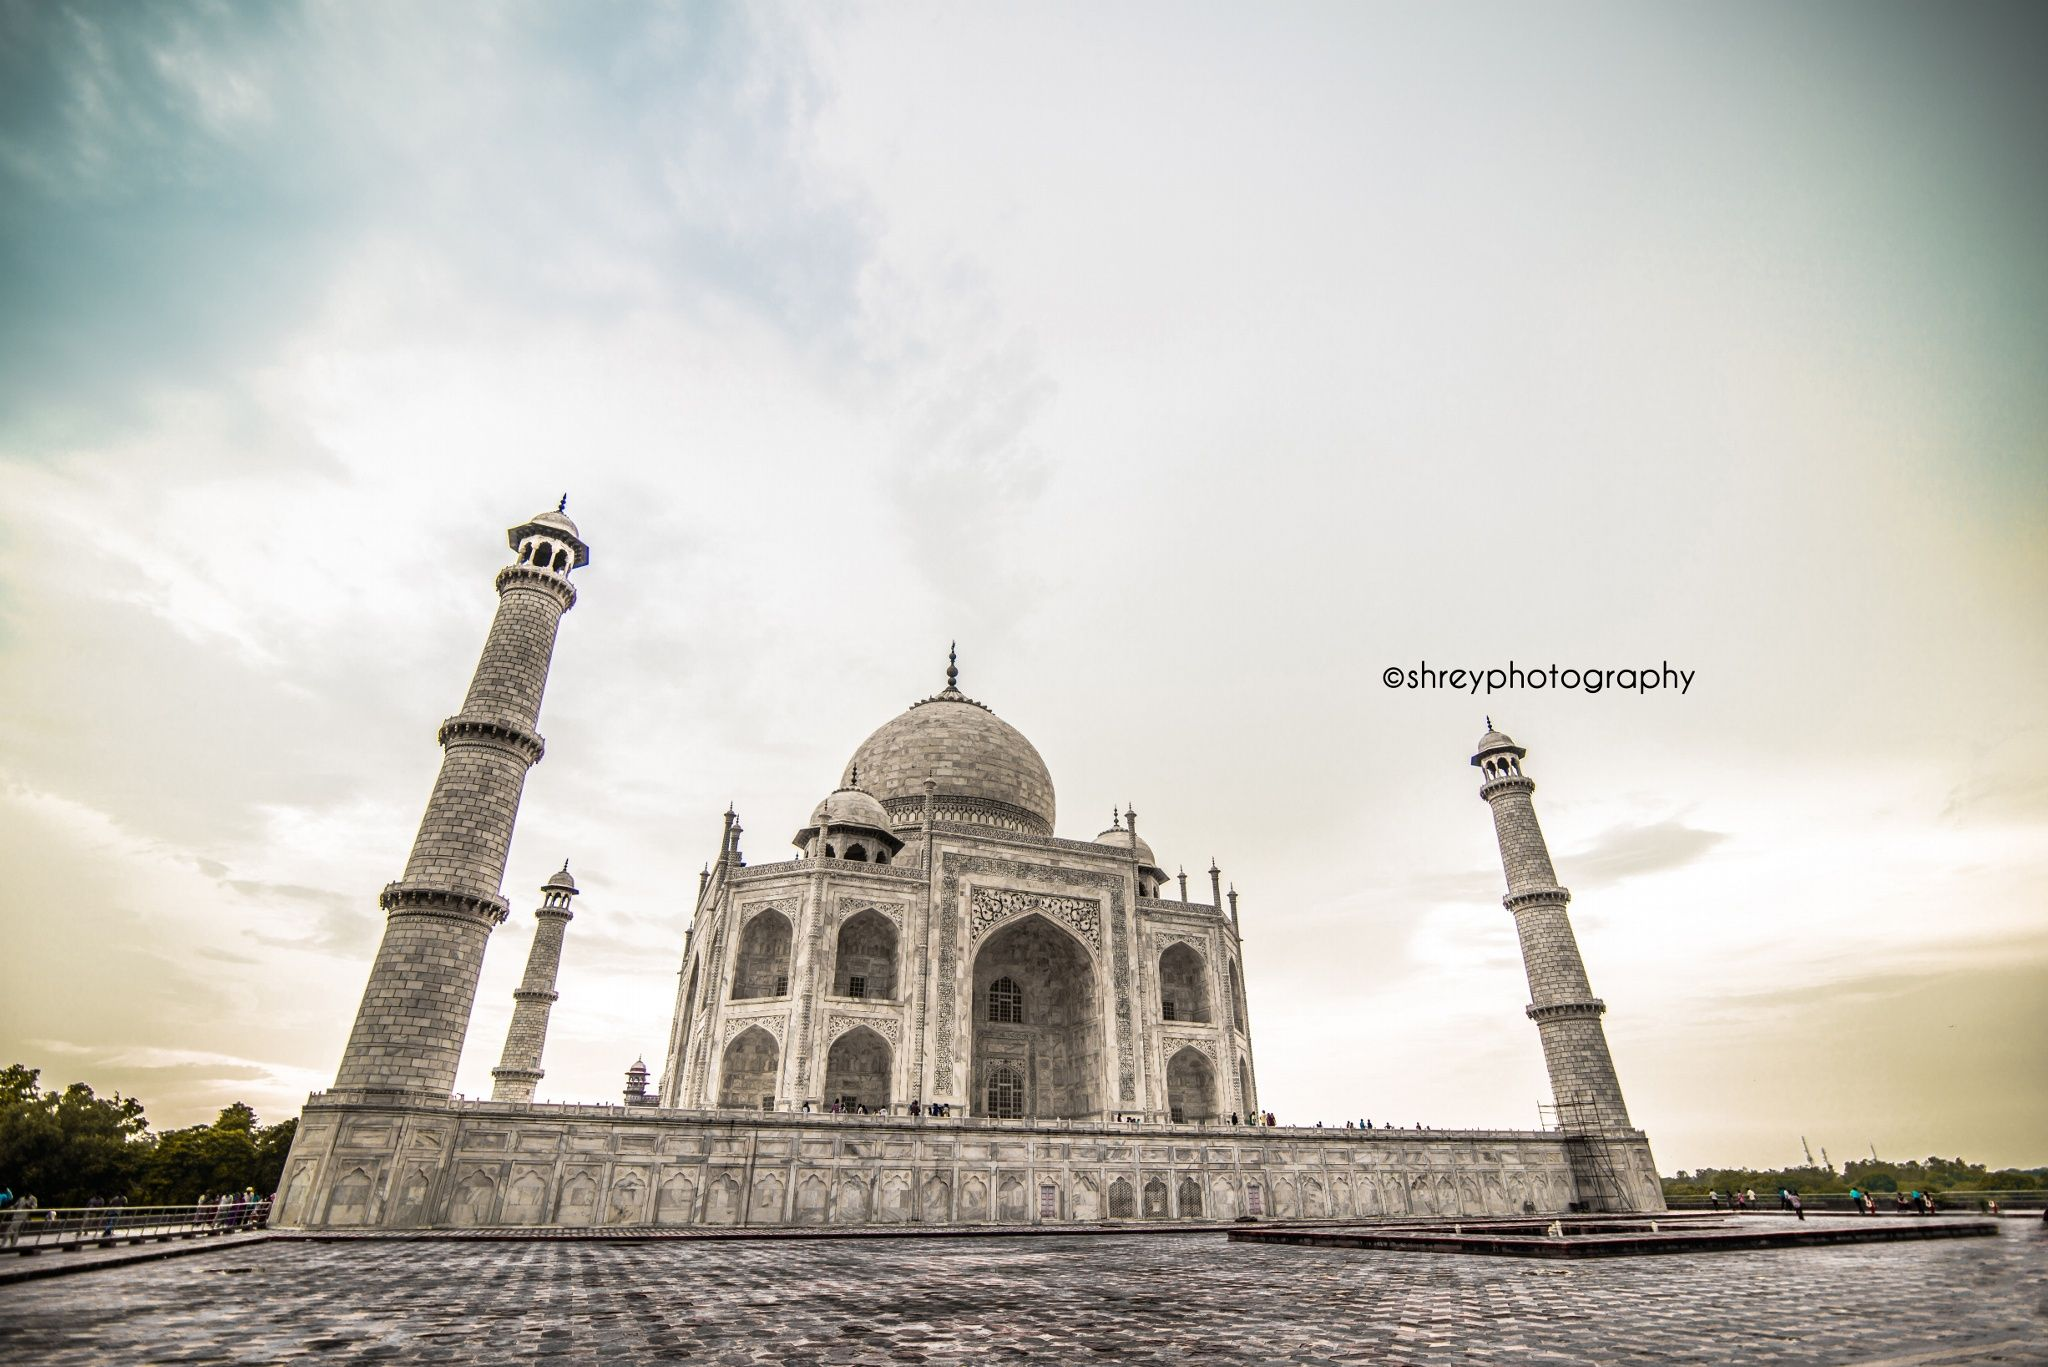 Taj Mahal - Symbol of Love by Shrey Photography on 500px